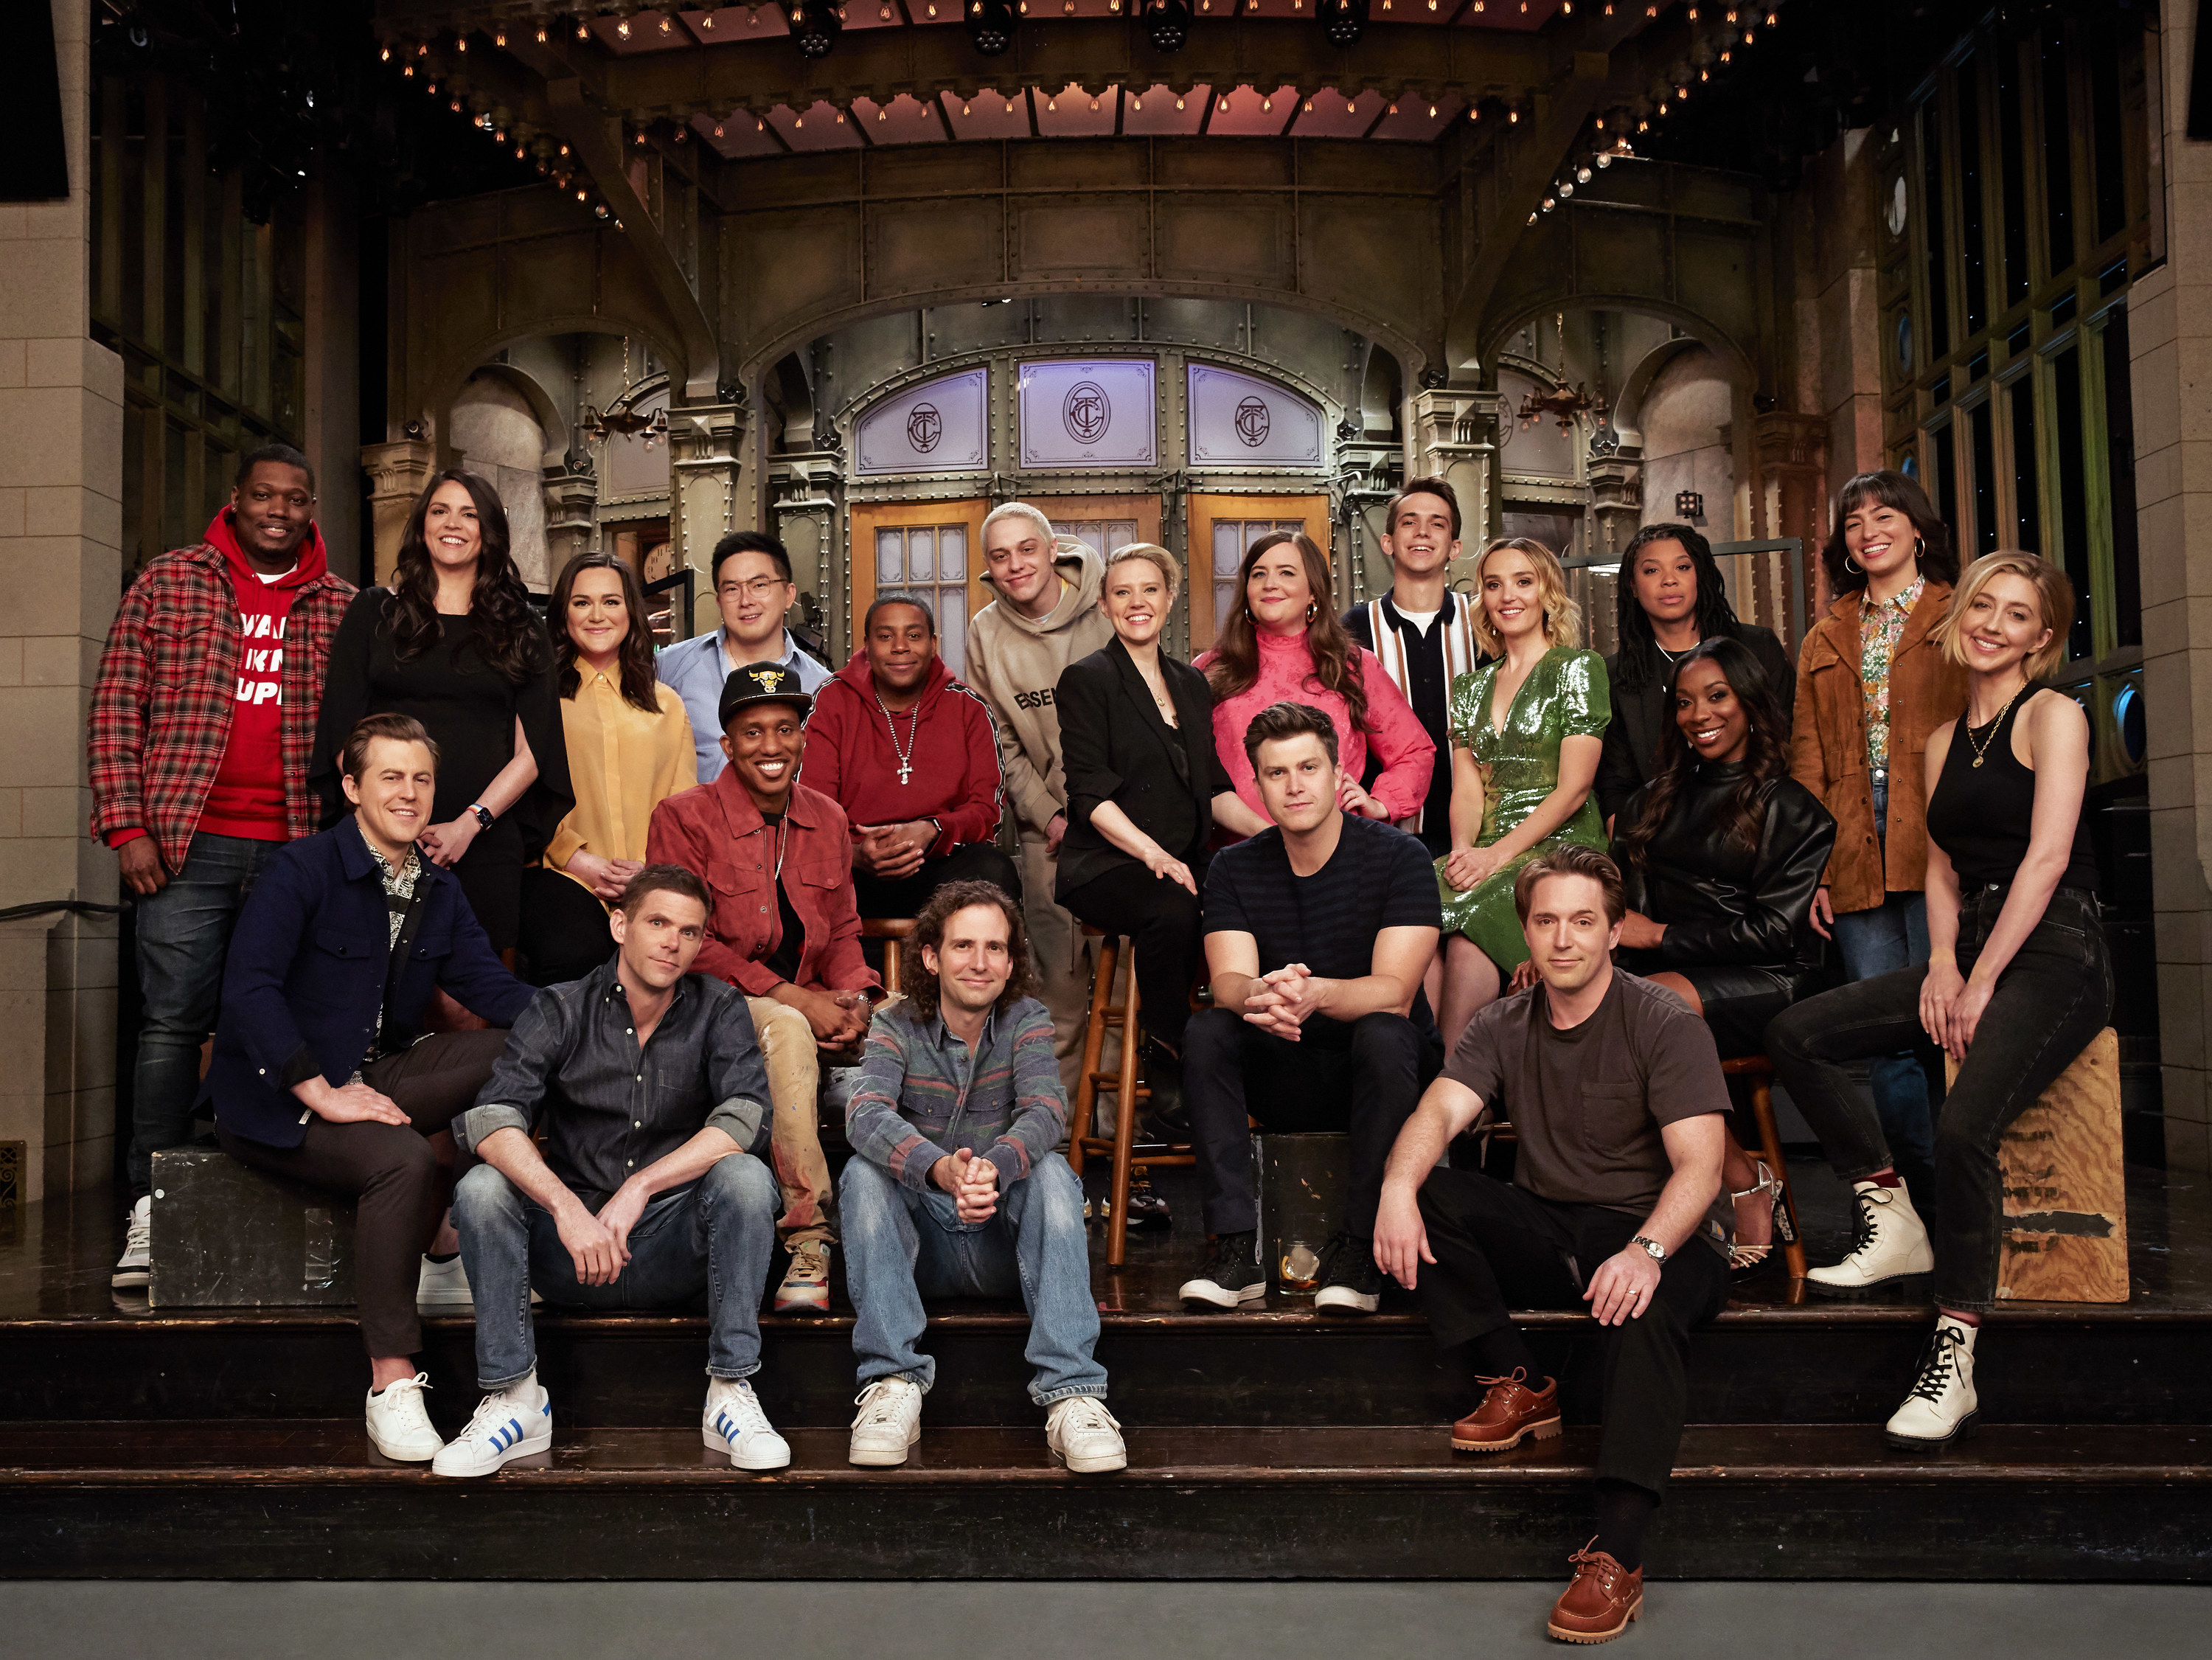 The entire cast poses for a photo on stage